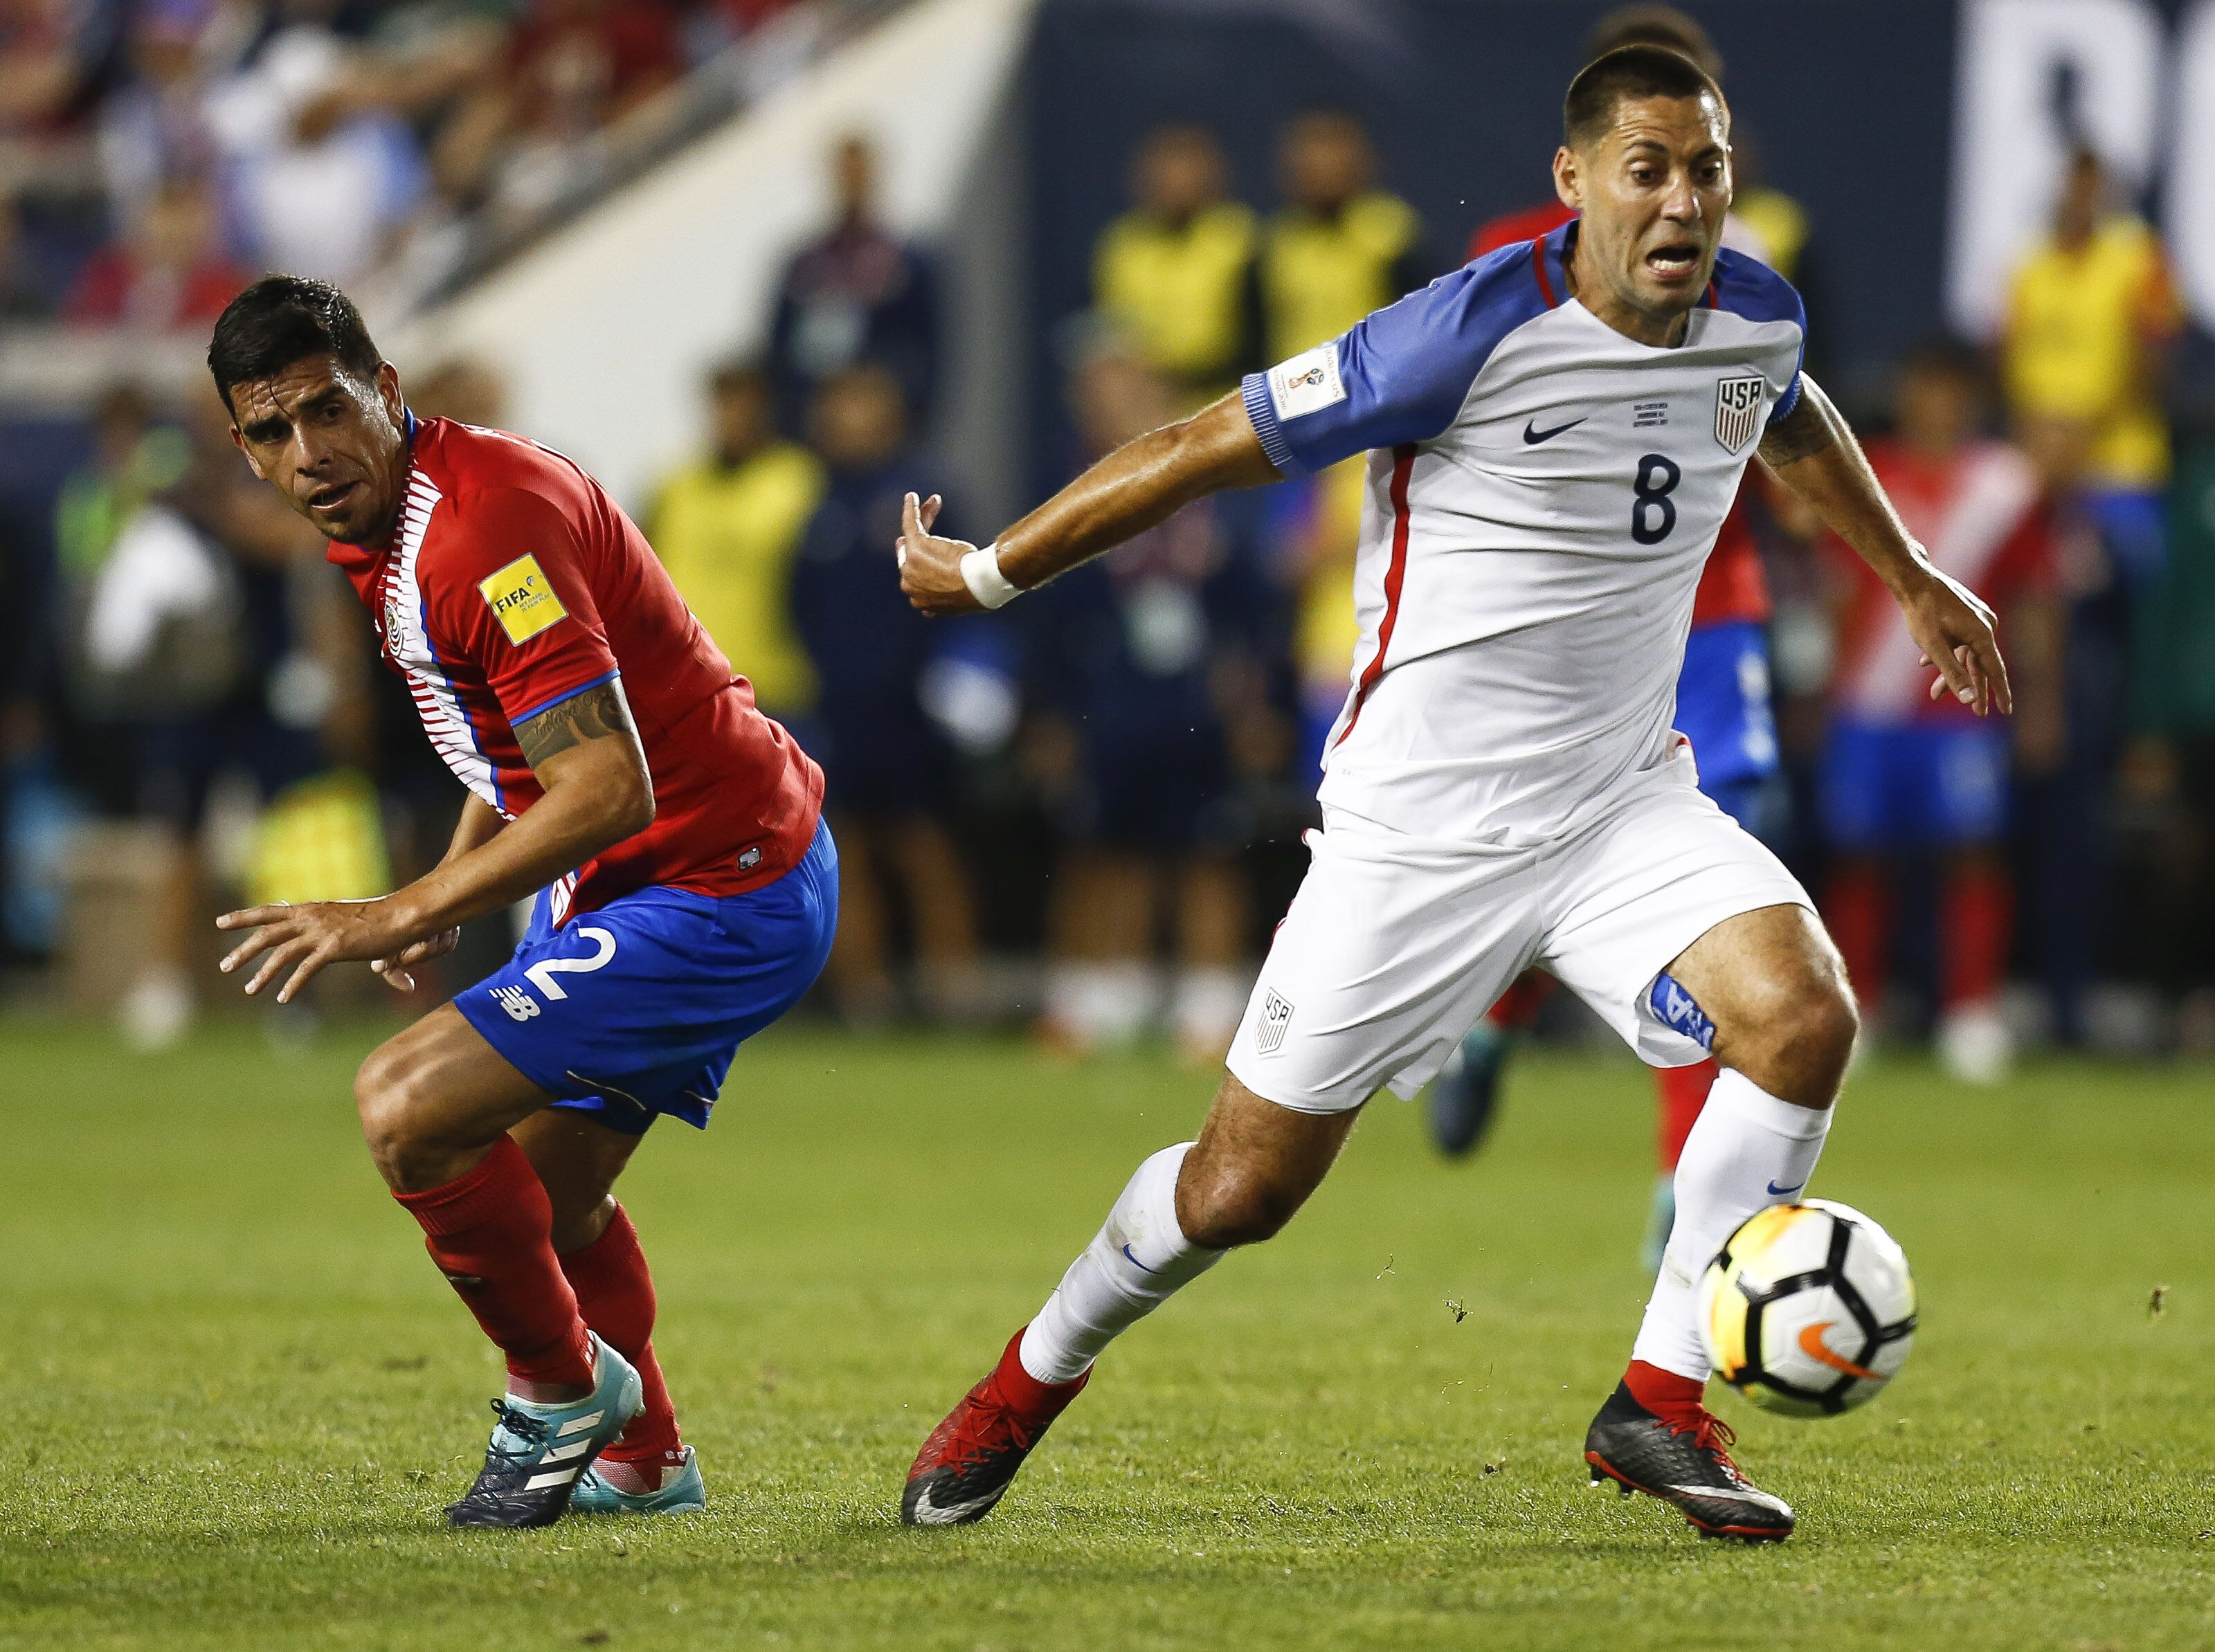 841695992-costa-rica-v-united-states-fifa-2018-world-cup-qualifier.jpg